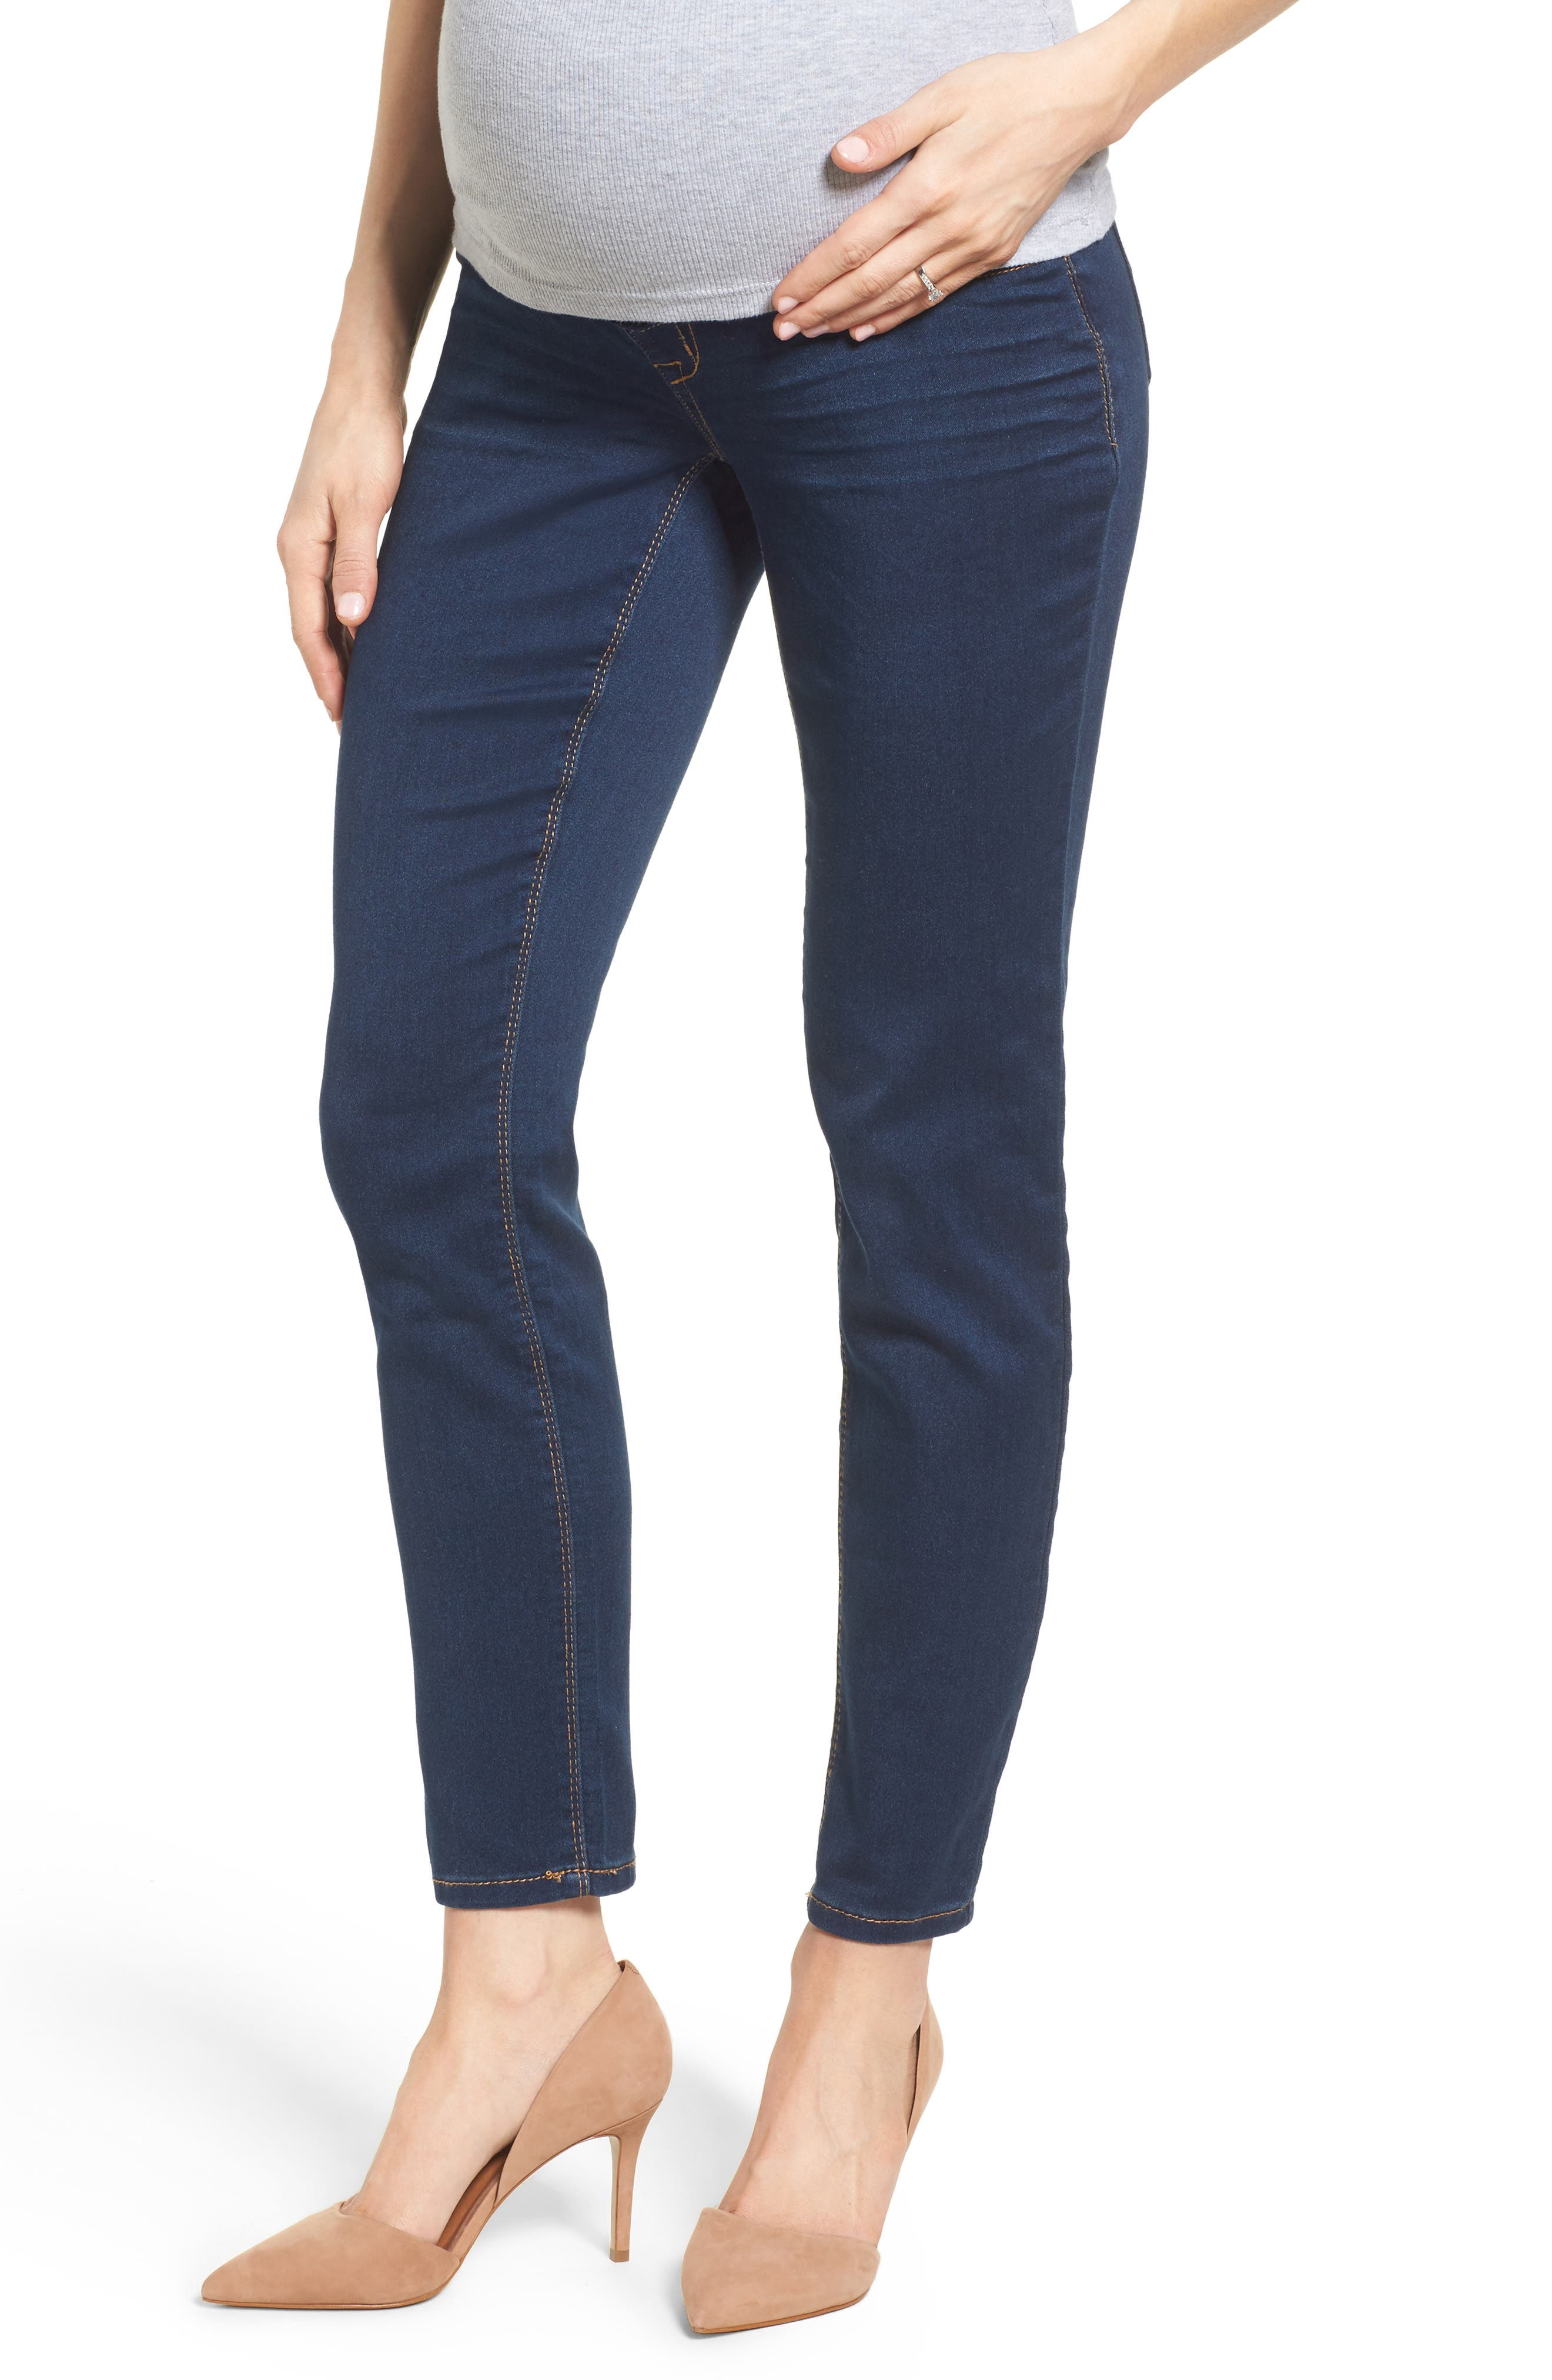 Butter Maternity Skinny Jeans,                         Main,                         color, Midnight